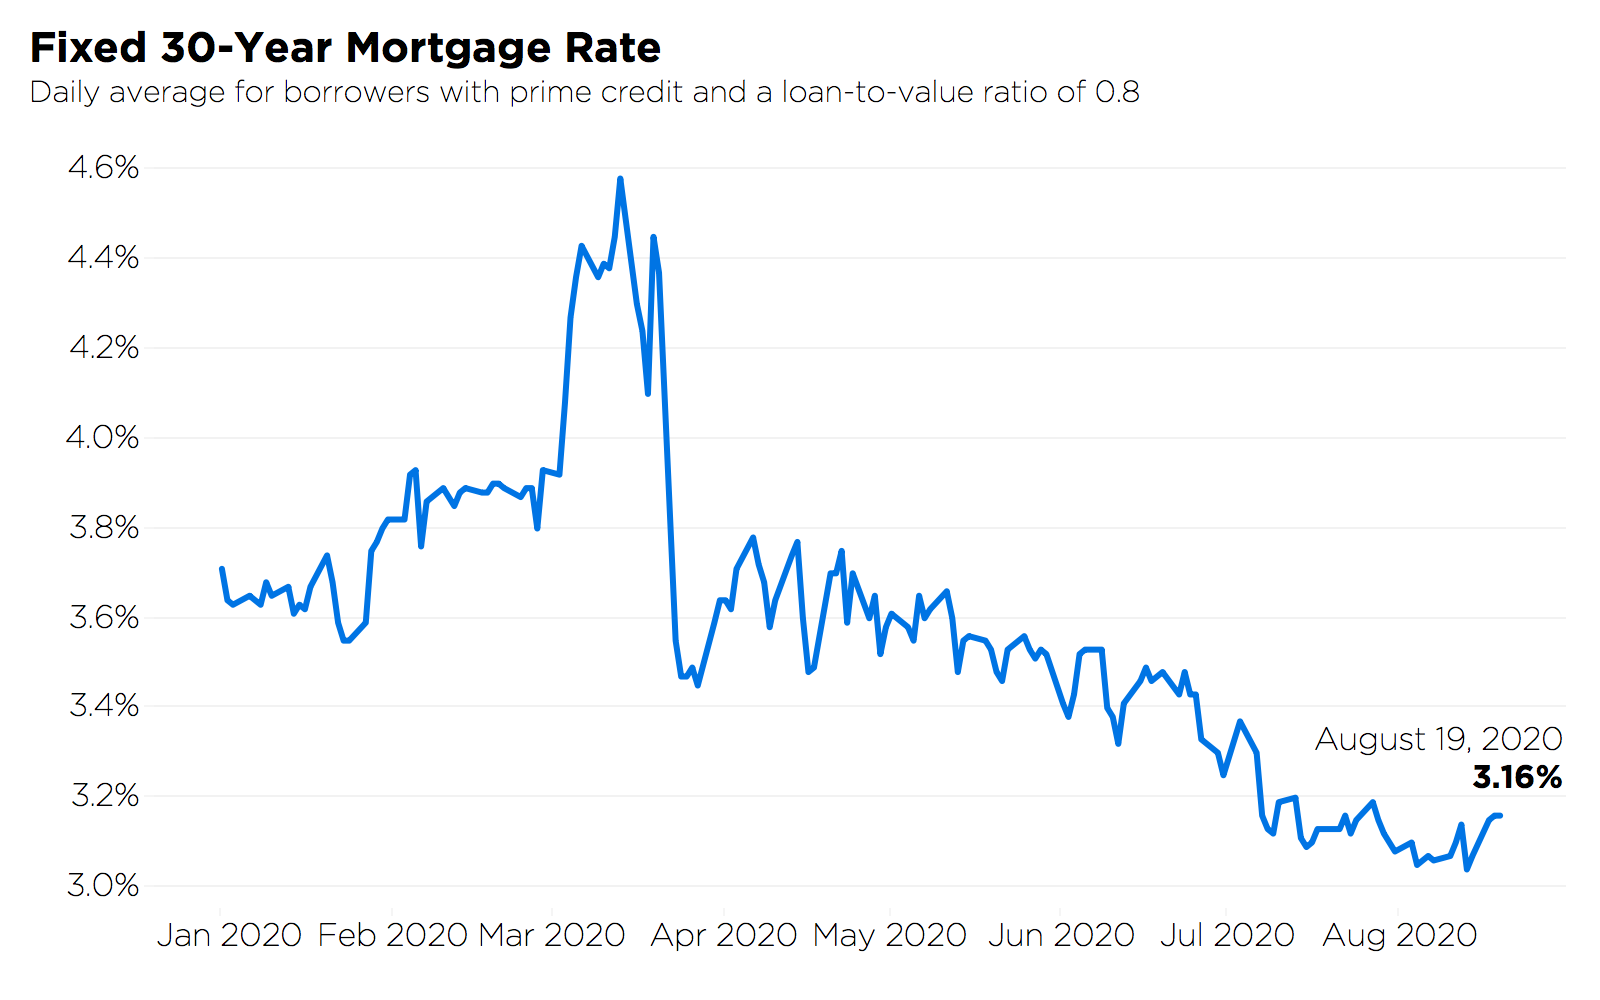 line chart of fixed 30 year mortgage rates from Jan 2020 to Aug 2020